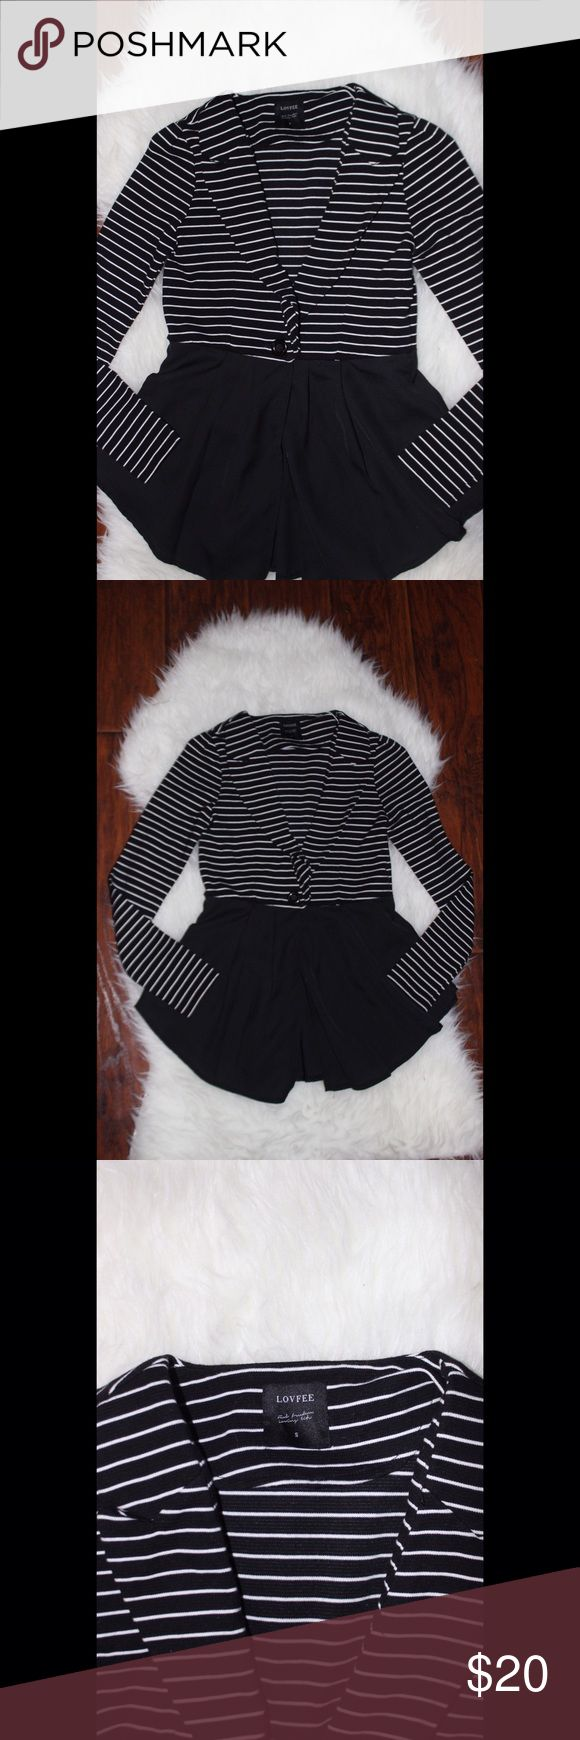 Dressy Jacket Black & White jacket. Dressy and perfect for work Forever 21 Jackets & Coats Blazers